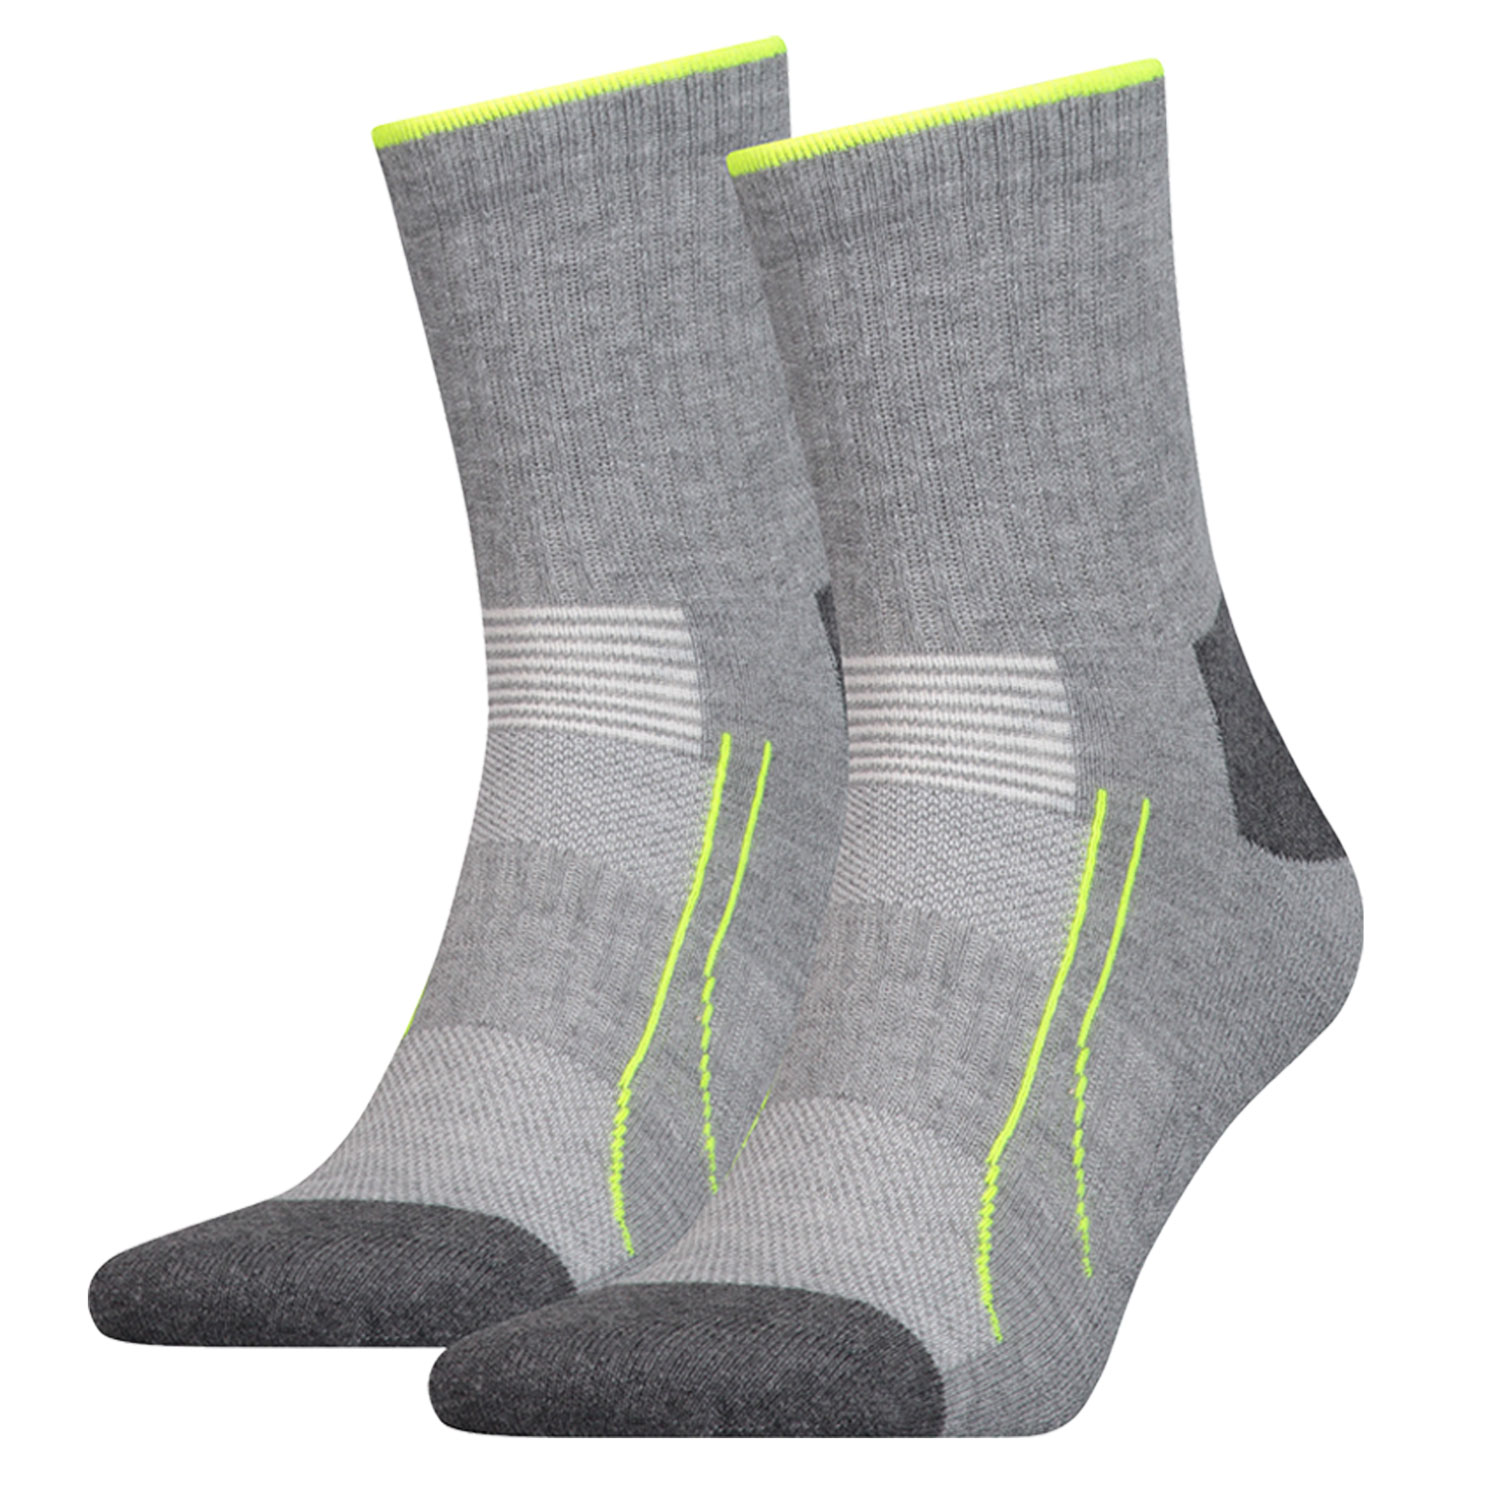 Puma Performance Train Short Socks 6 Paar , 261010001 – Bild 2